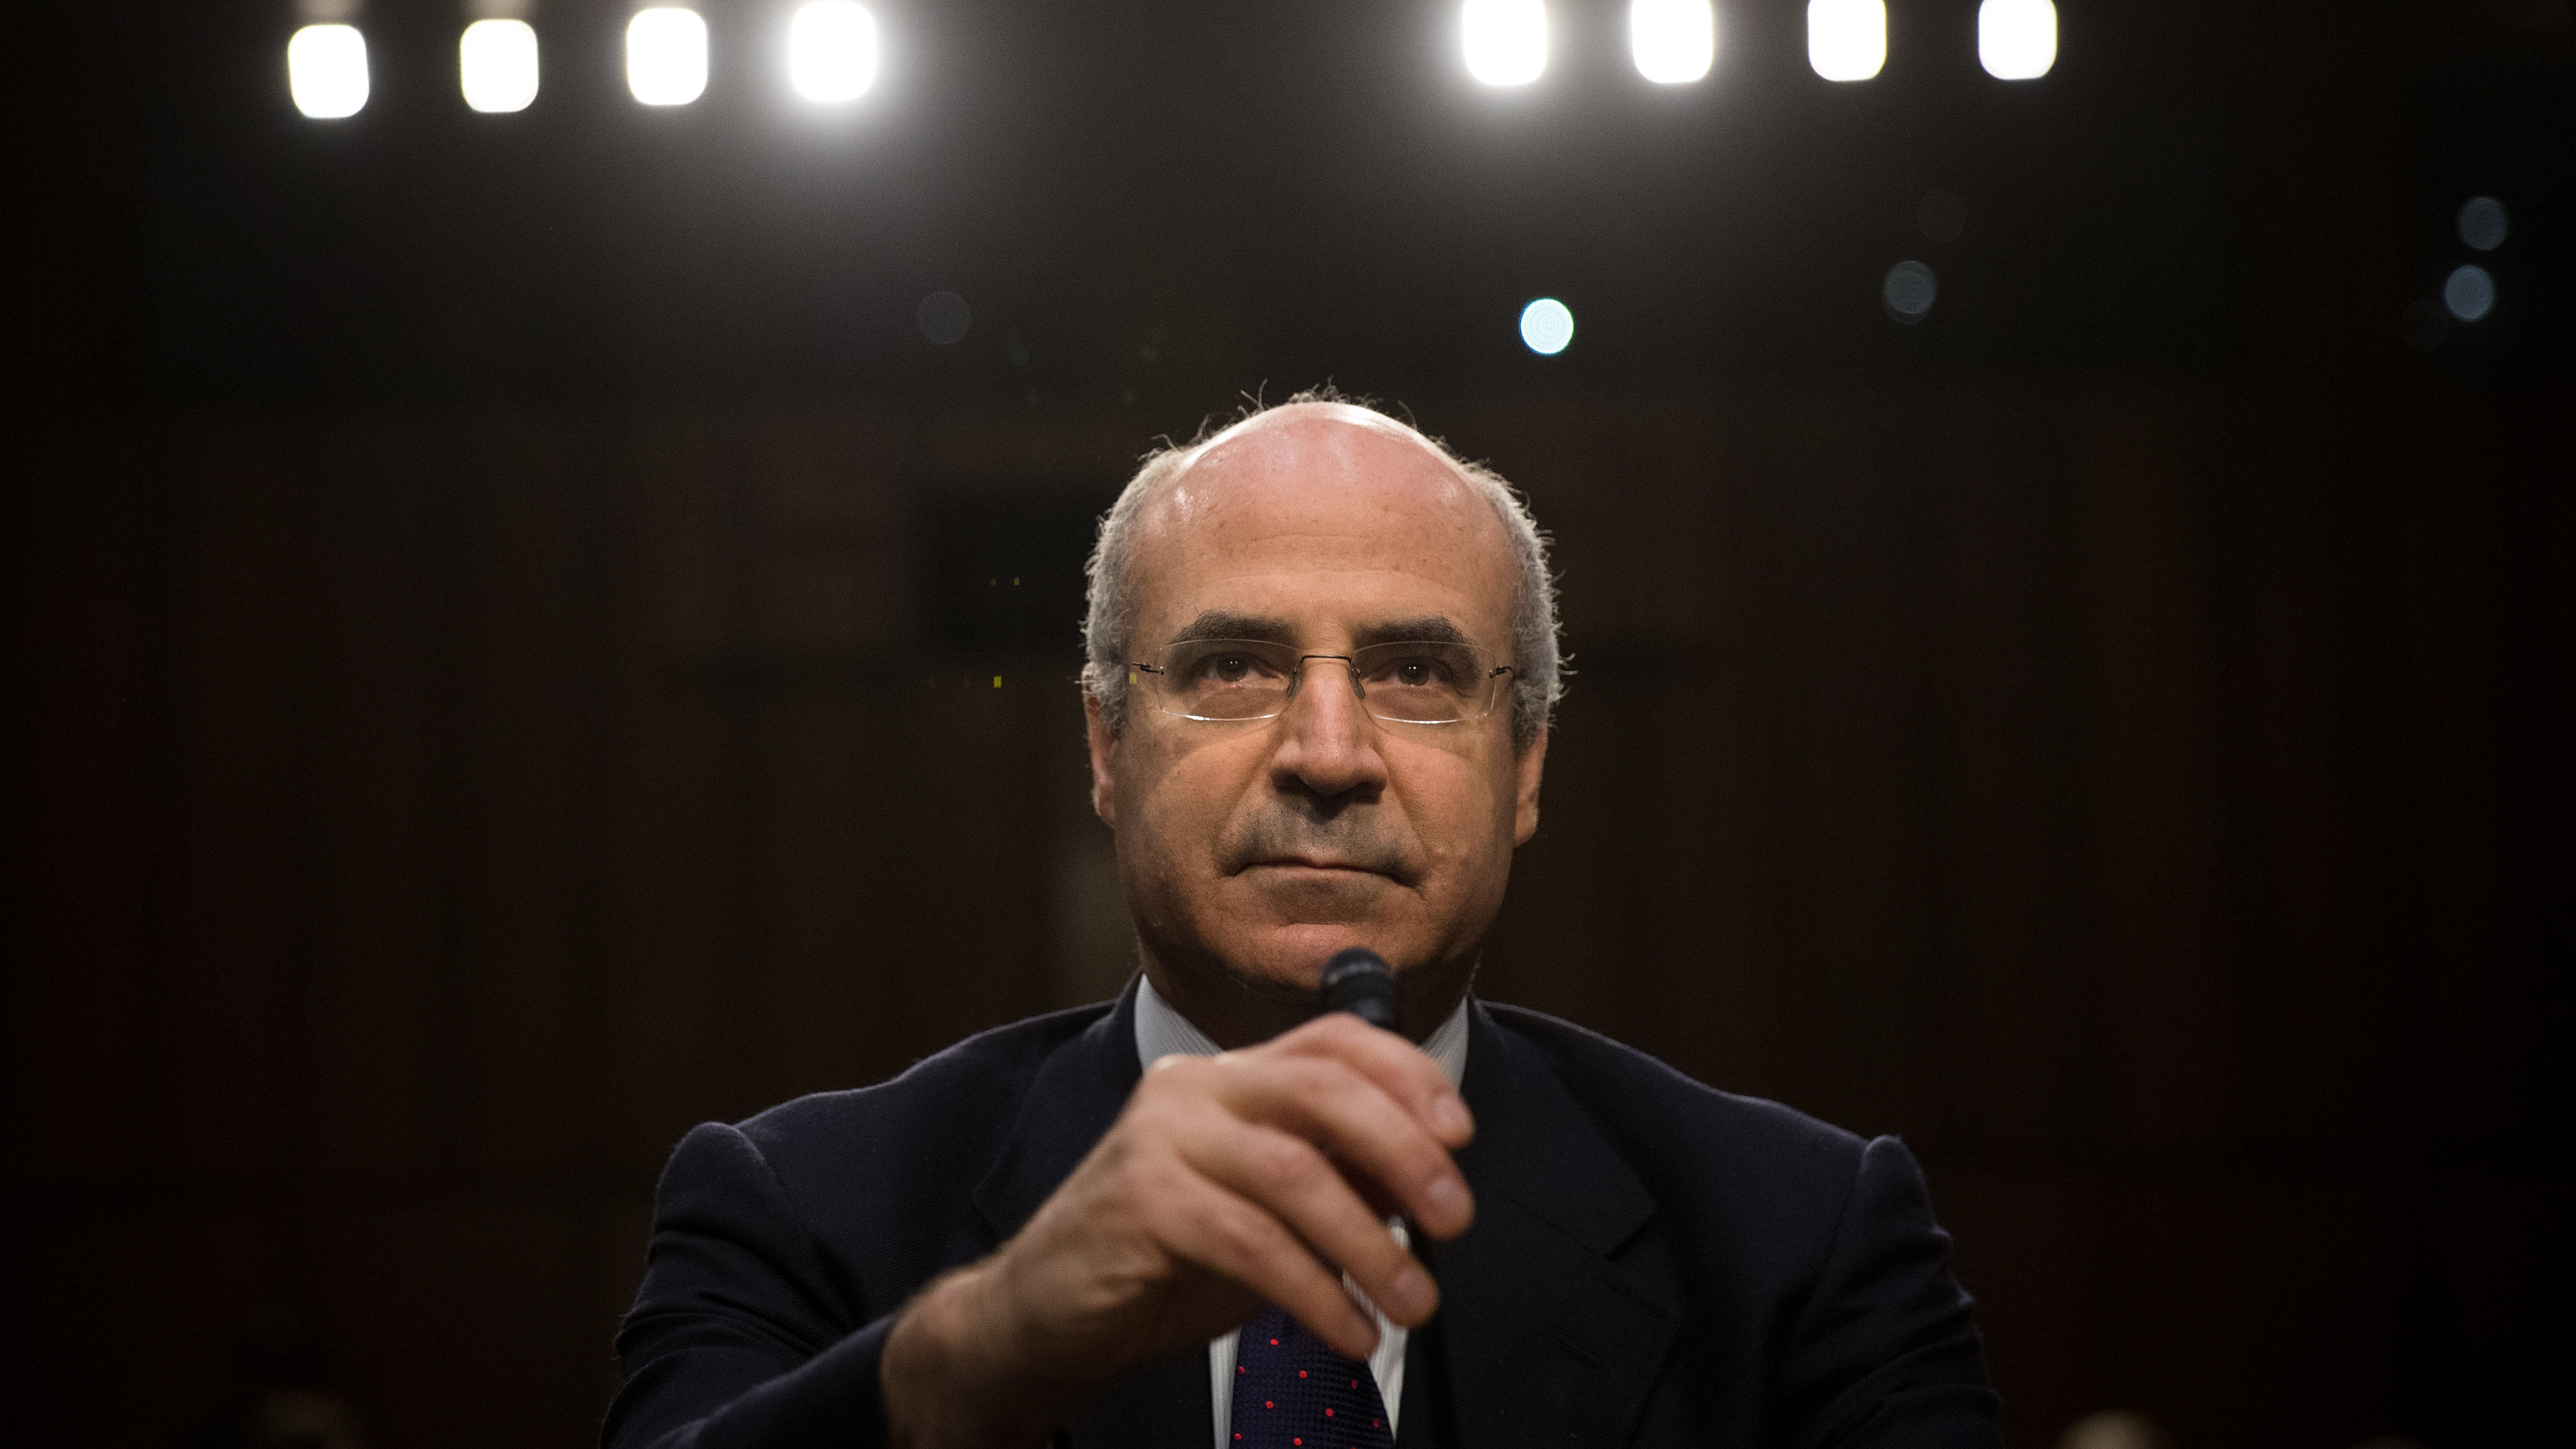 Bill Browder: I Suspect Fusion GPS Gives 'Incentives' to Journalists